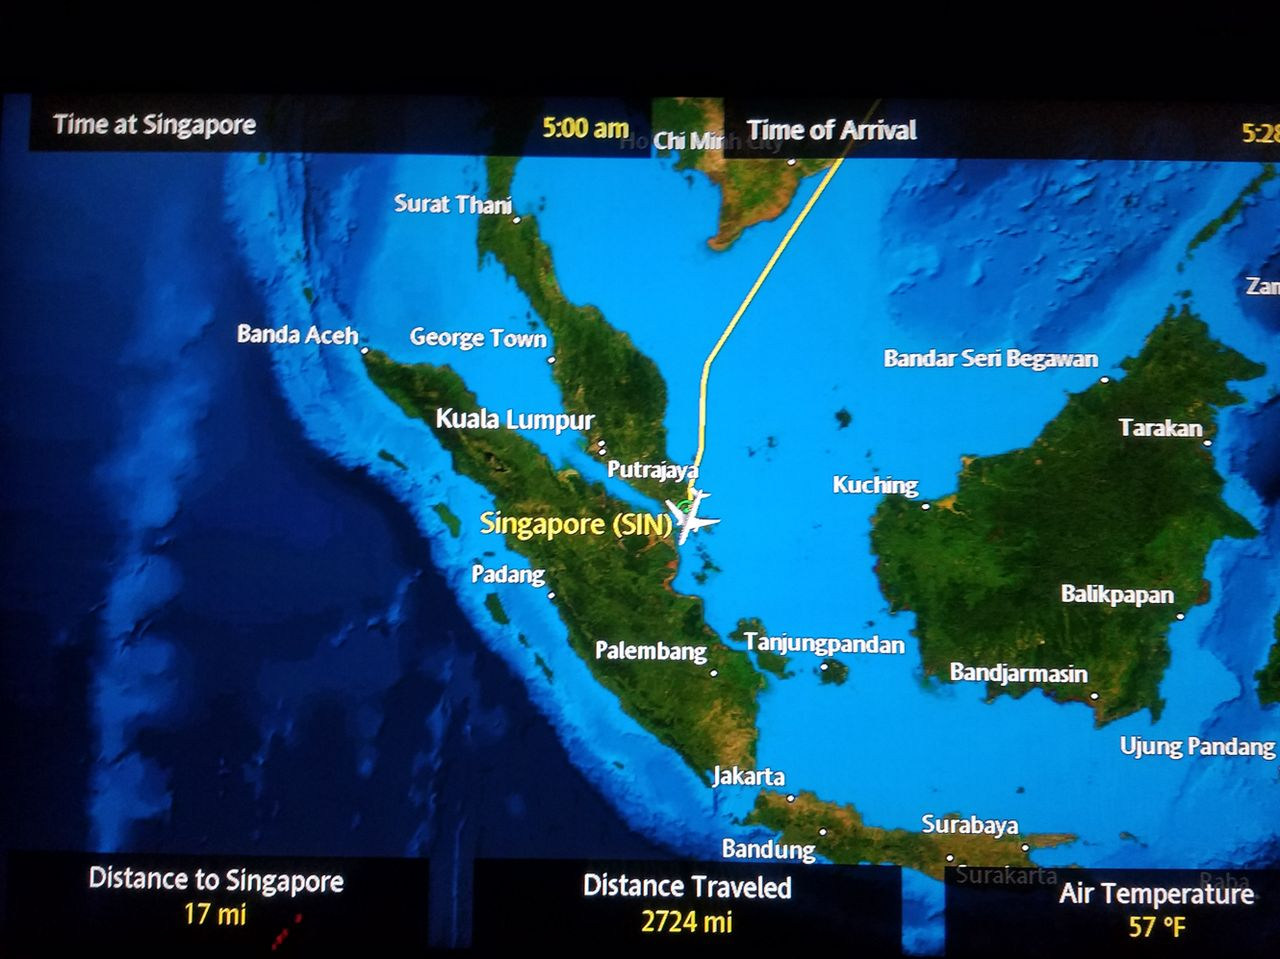 Review of Singapore Airlines flight from Shanghai to Singapore in First